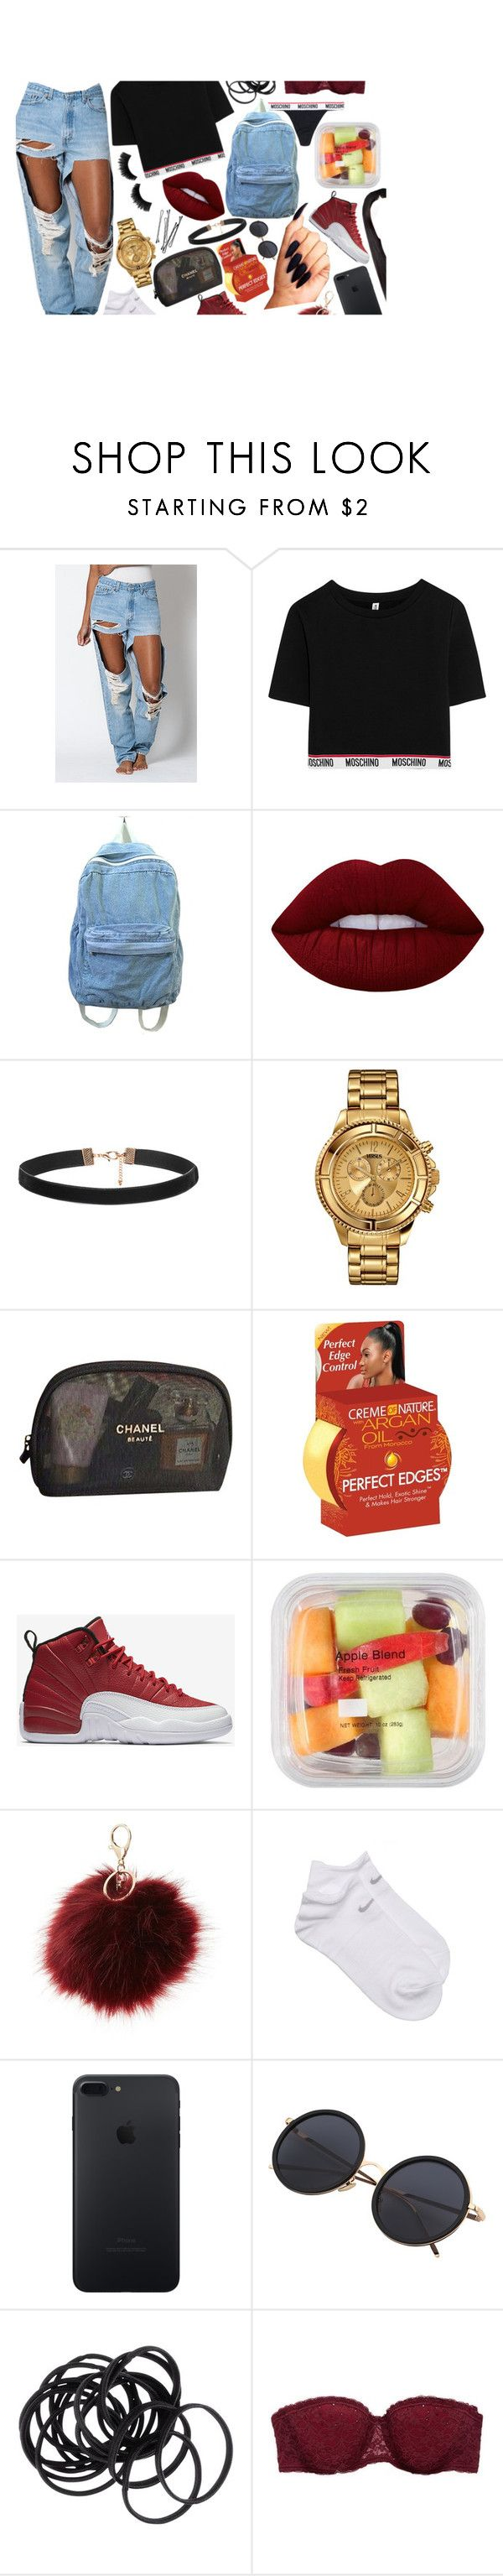 """""""#juspostingdraftscusidgaf"""" by d-etr0it ❤ liked on Polyvore featuring beauty, Levi's, Moschino, Lime Crime, Versus, Chanel, Creme of Nature, BOBBY, NIKE and Charlotte Russe"""